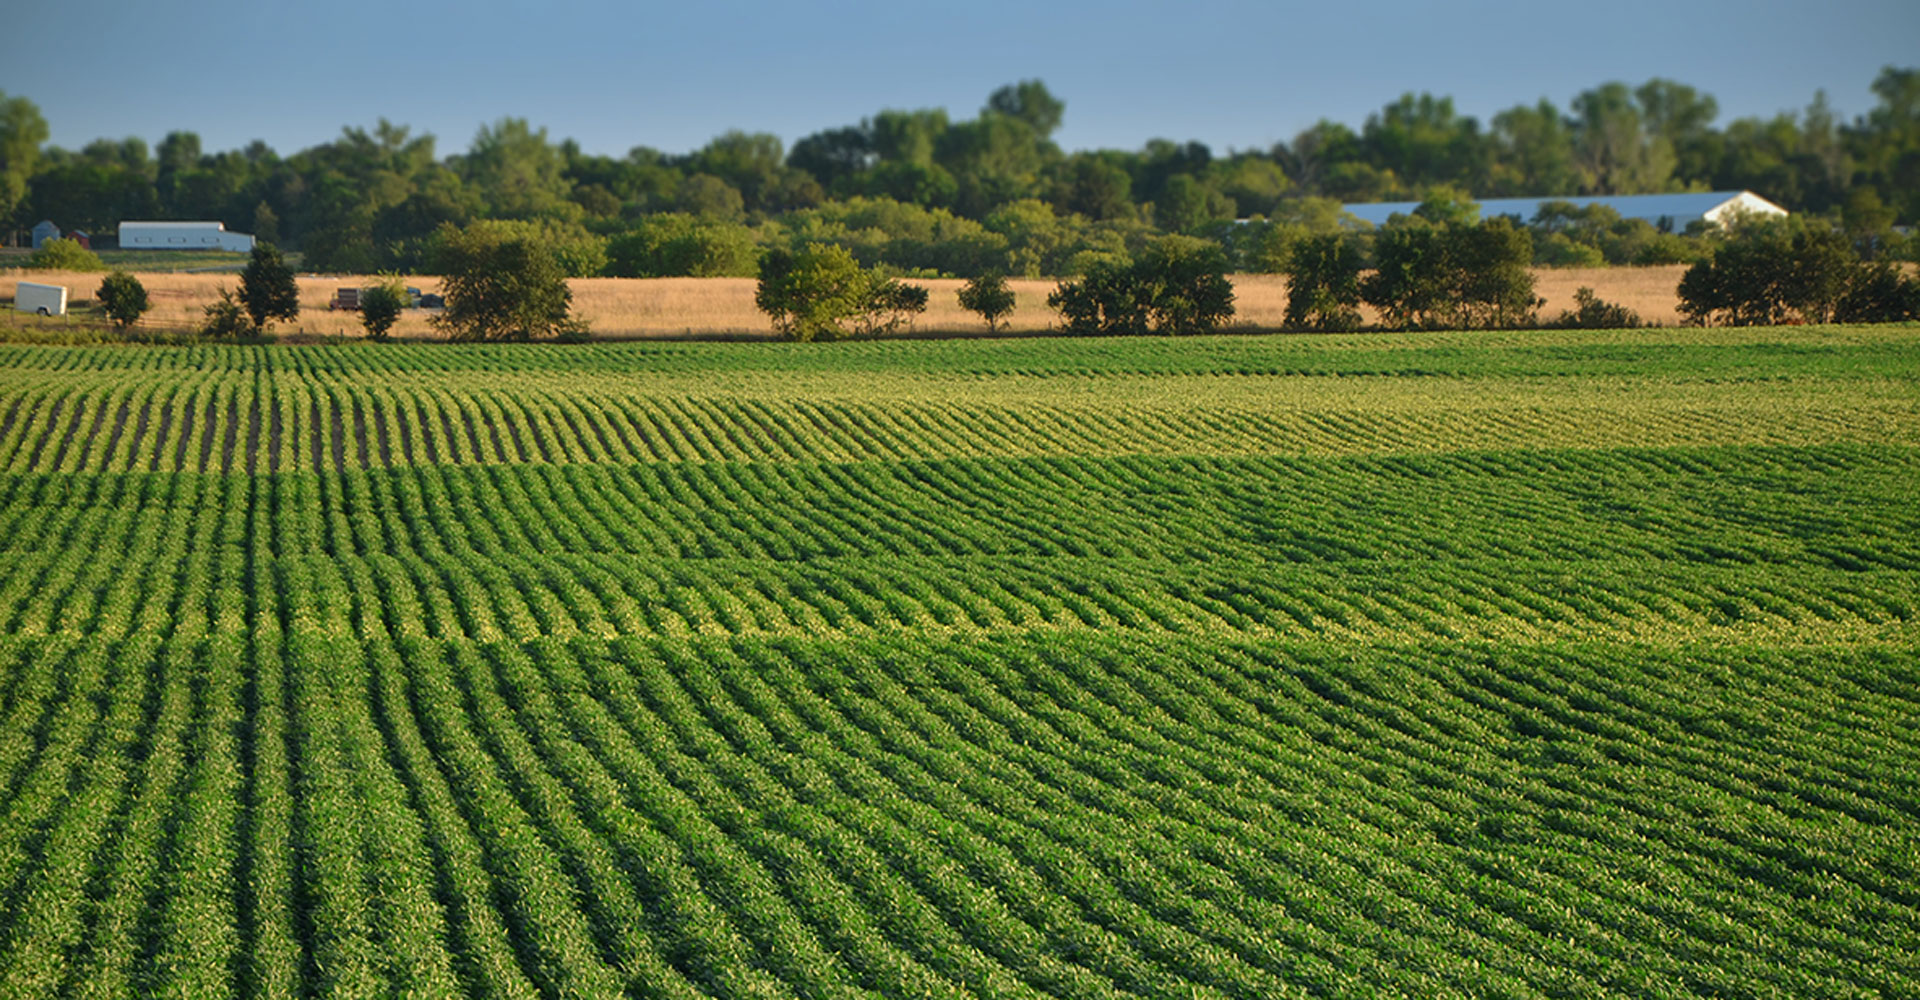 10 Regenerative Agriculture Practices Every Grower Should Follow